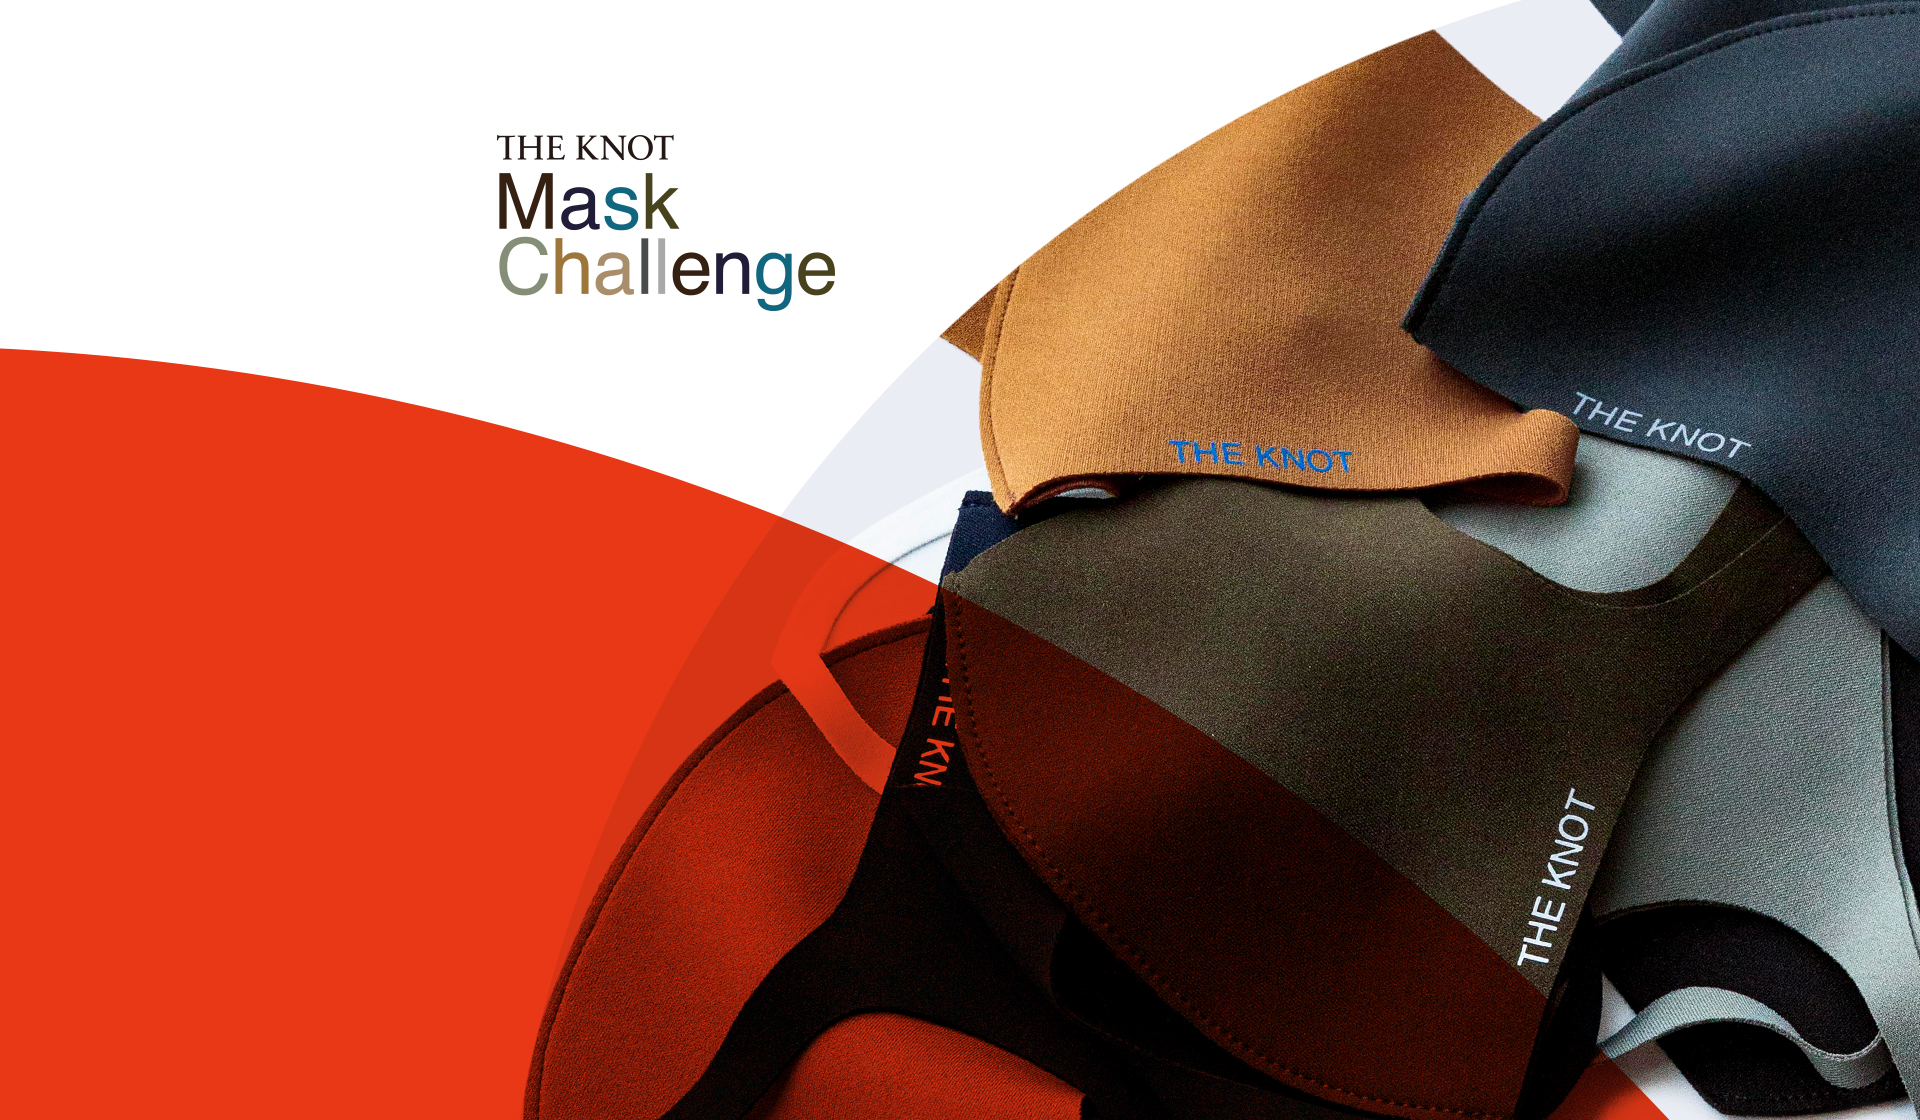 【キャンペーン】THE KNOT Mask Challenge